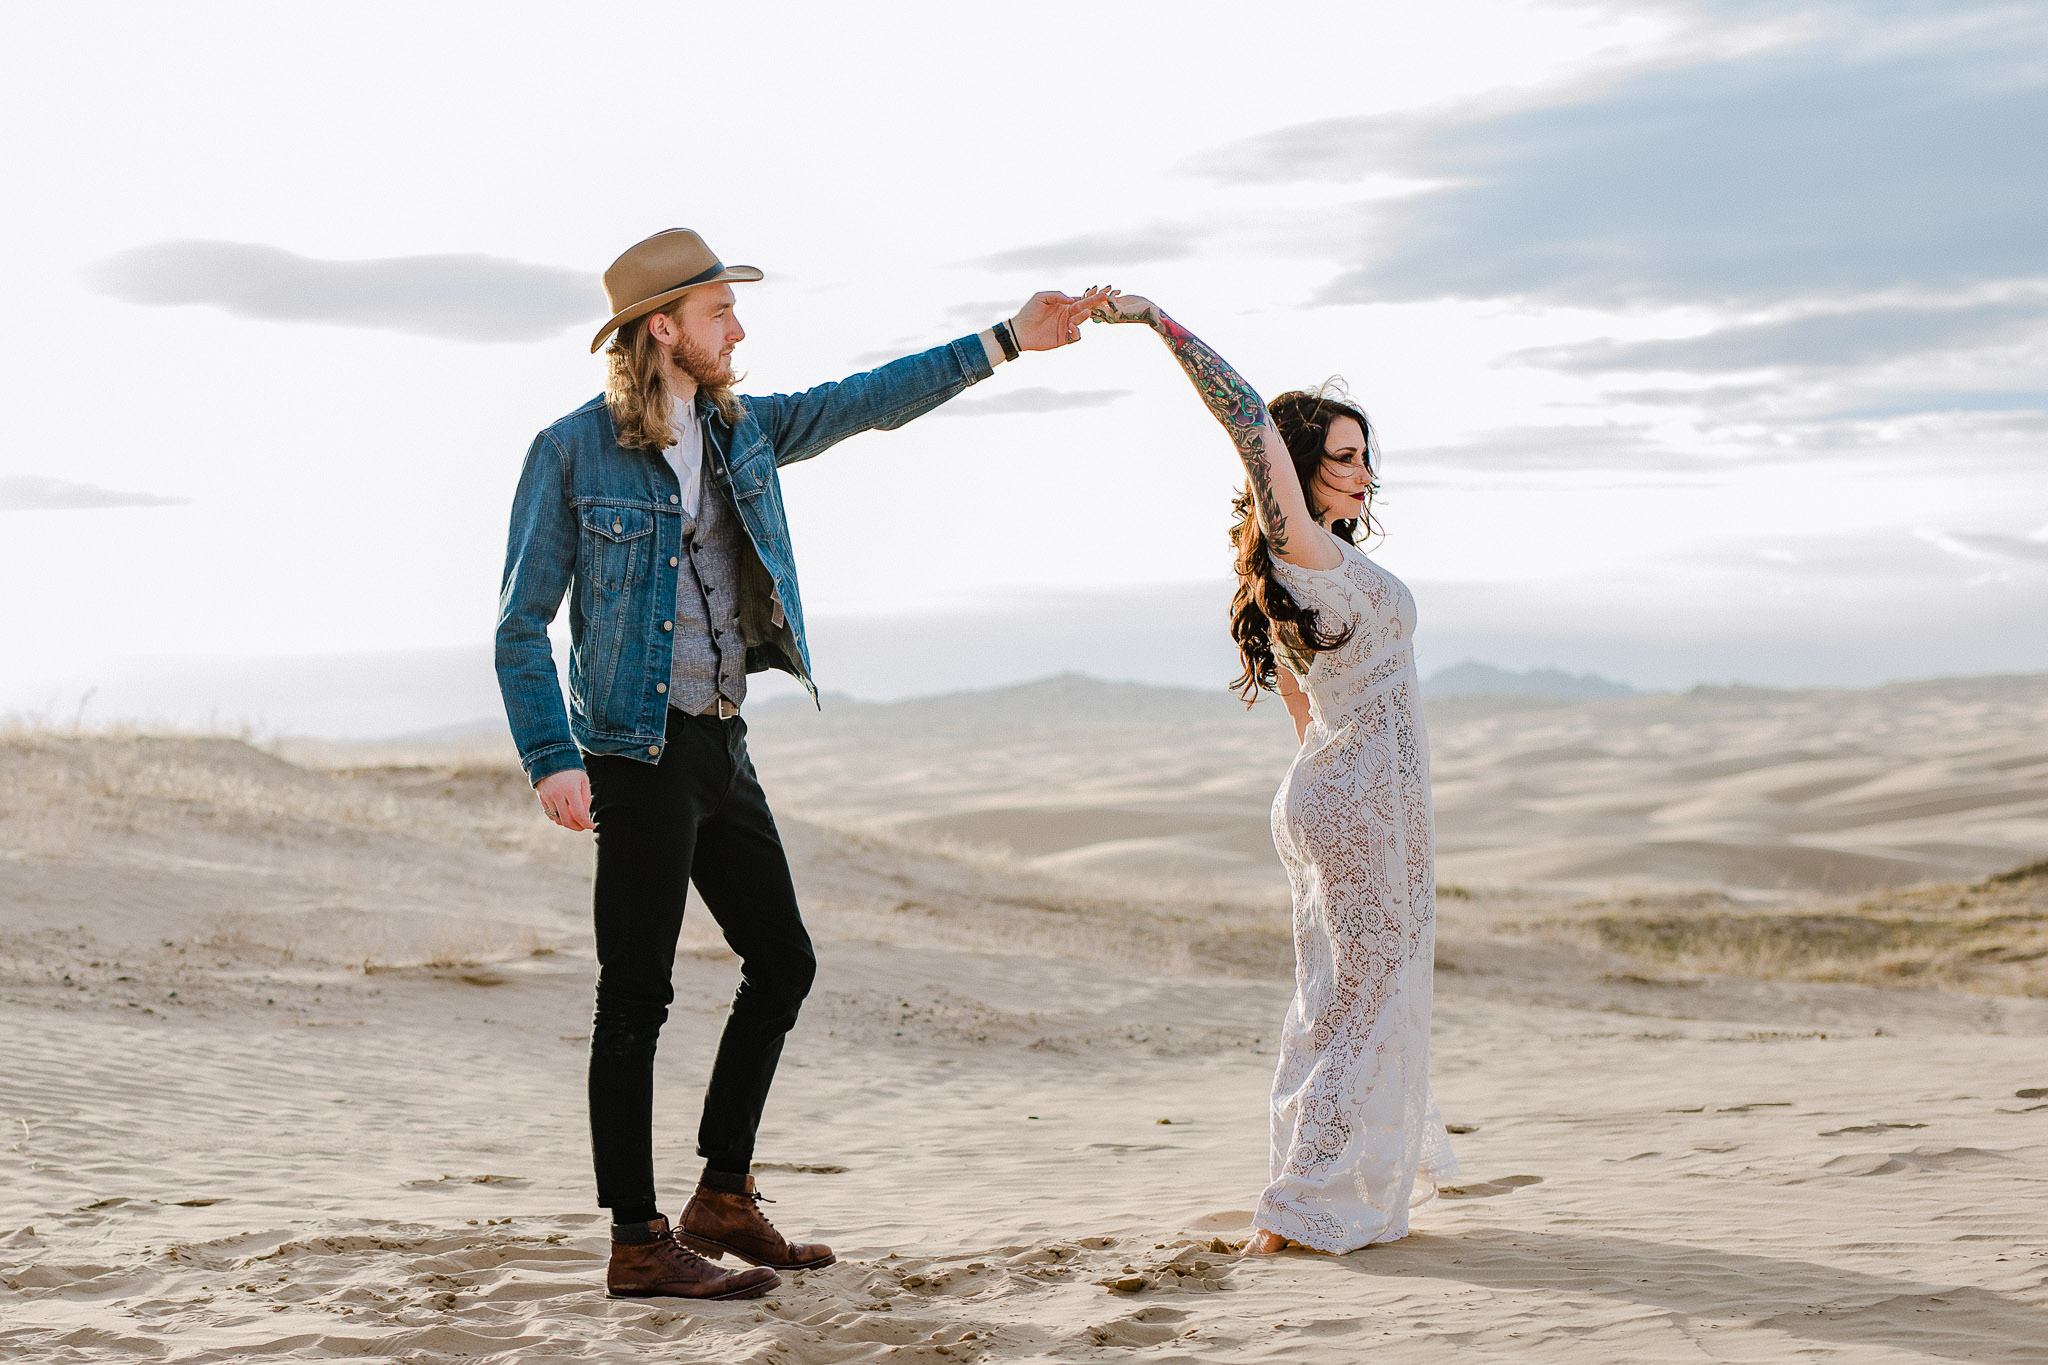 Alternative wedding couple dance during their adventure session at the Little Sahara Sand Dunes in Utah